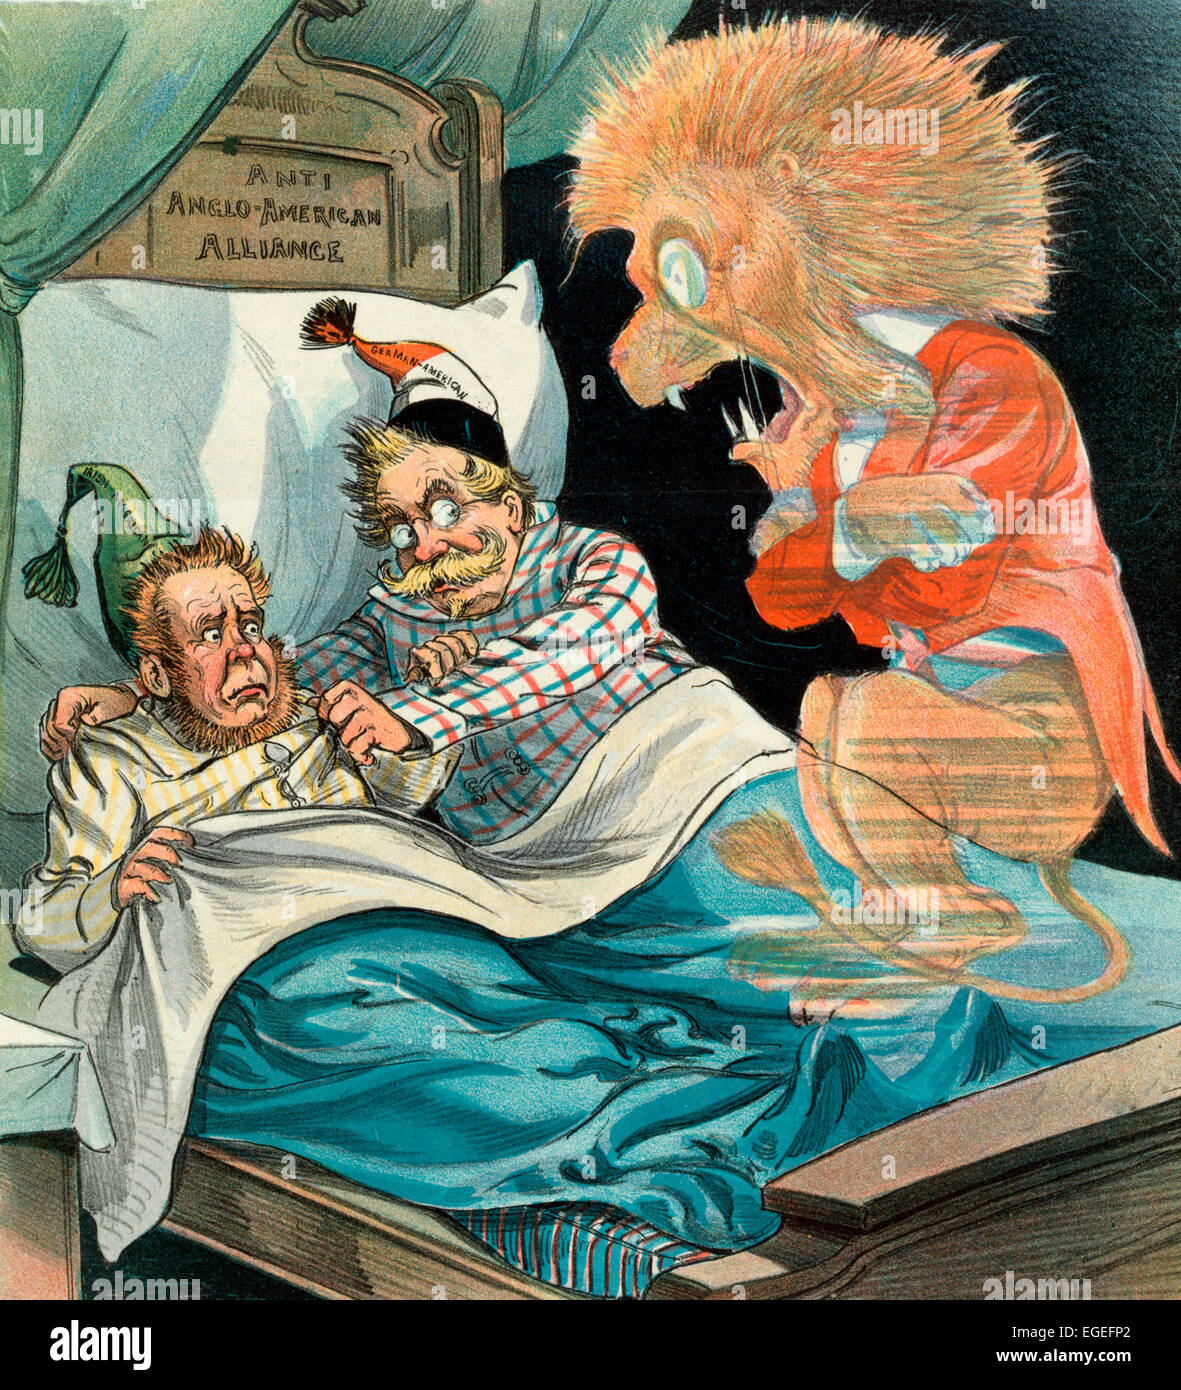 Politics makes strange bedfellows - The ghost of the British Lion reacting with fear at finding an 'Irish American' - Stock Image